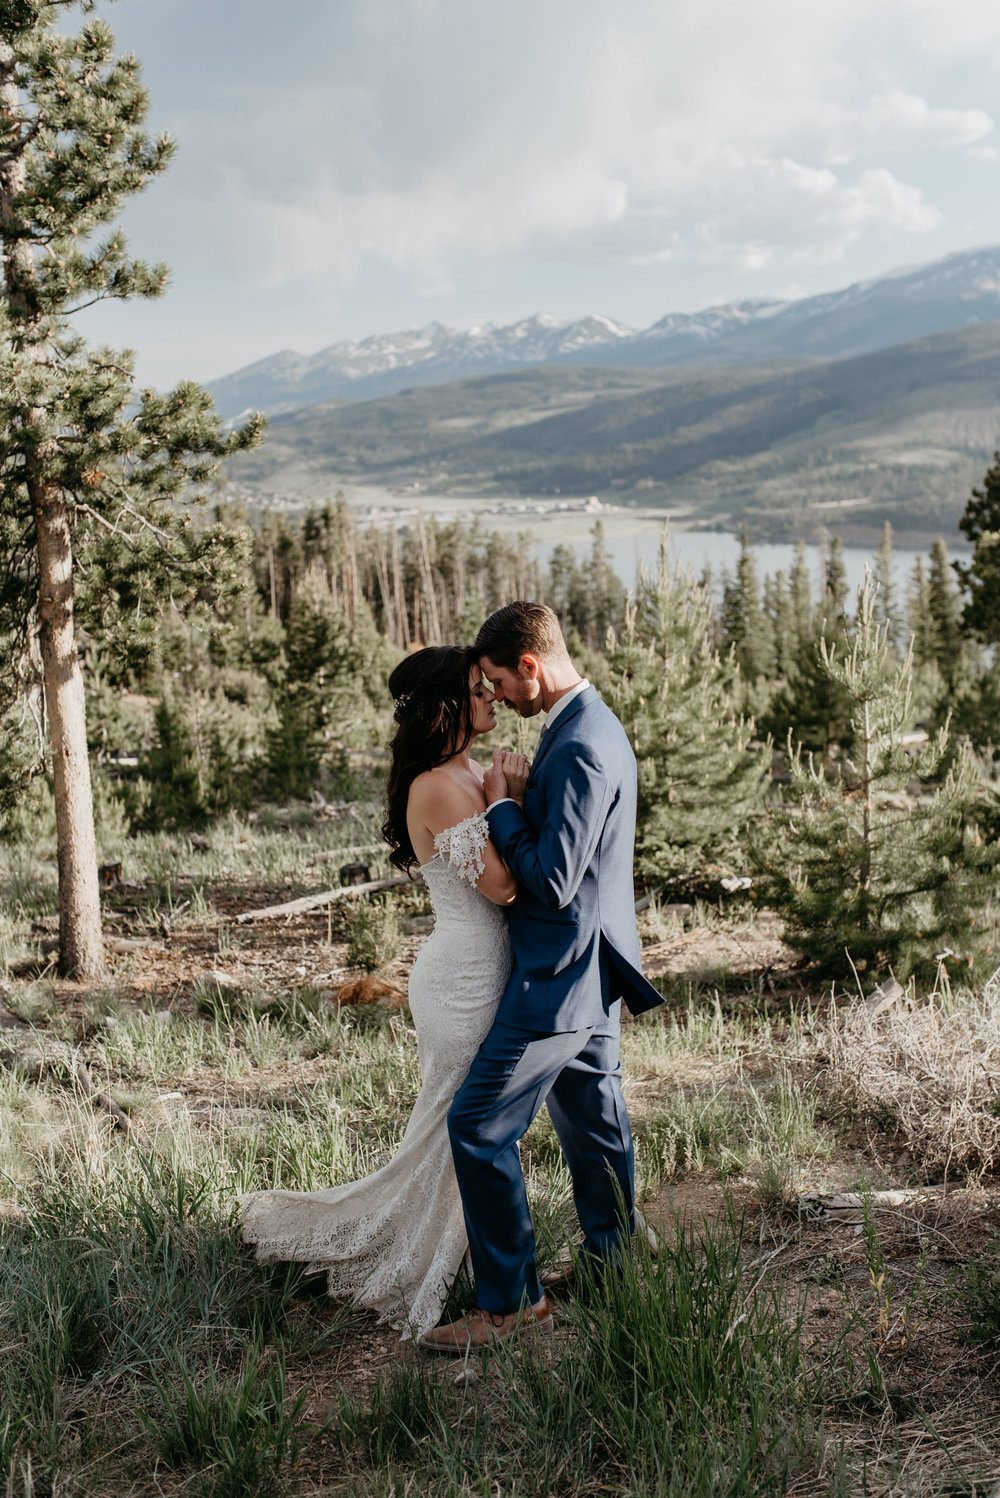 Colorado elopement photographer. Sapphire Point elopement in Dillon, CO.